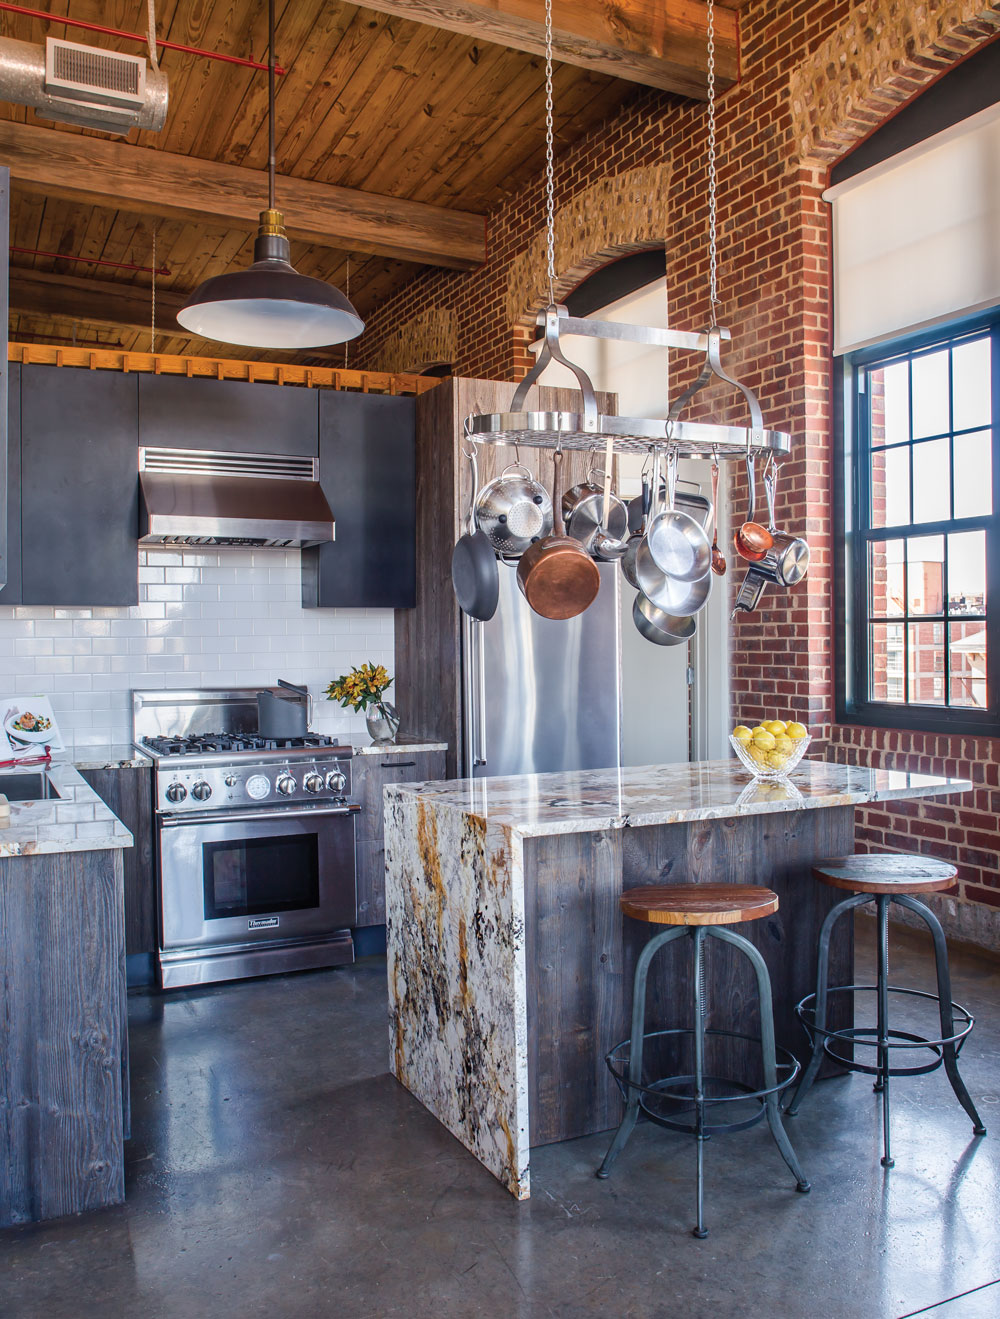 Cotton Mill Lofts kitchen